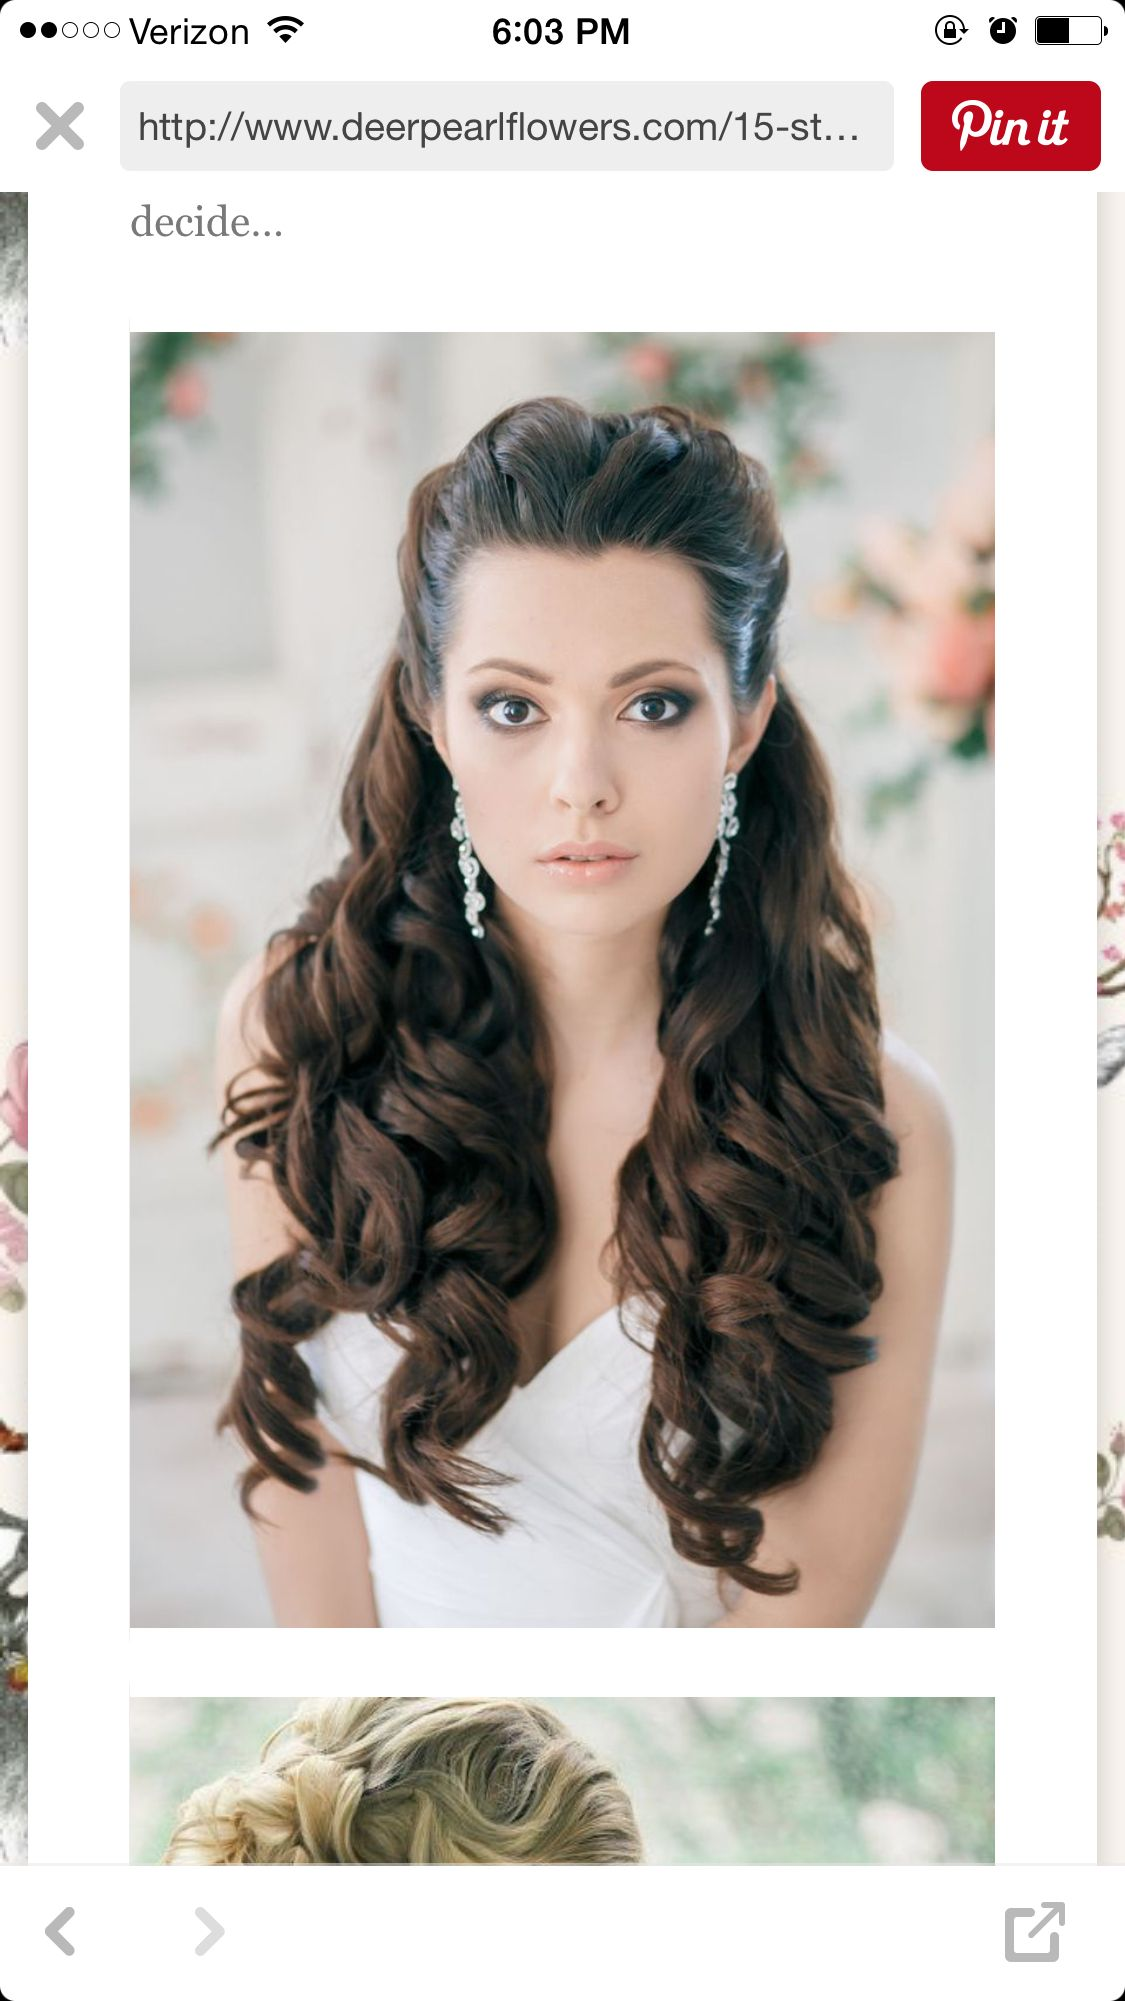 I love this hair and make up look Definitely what I want to go for